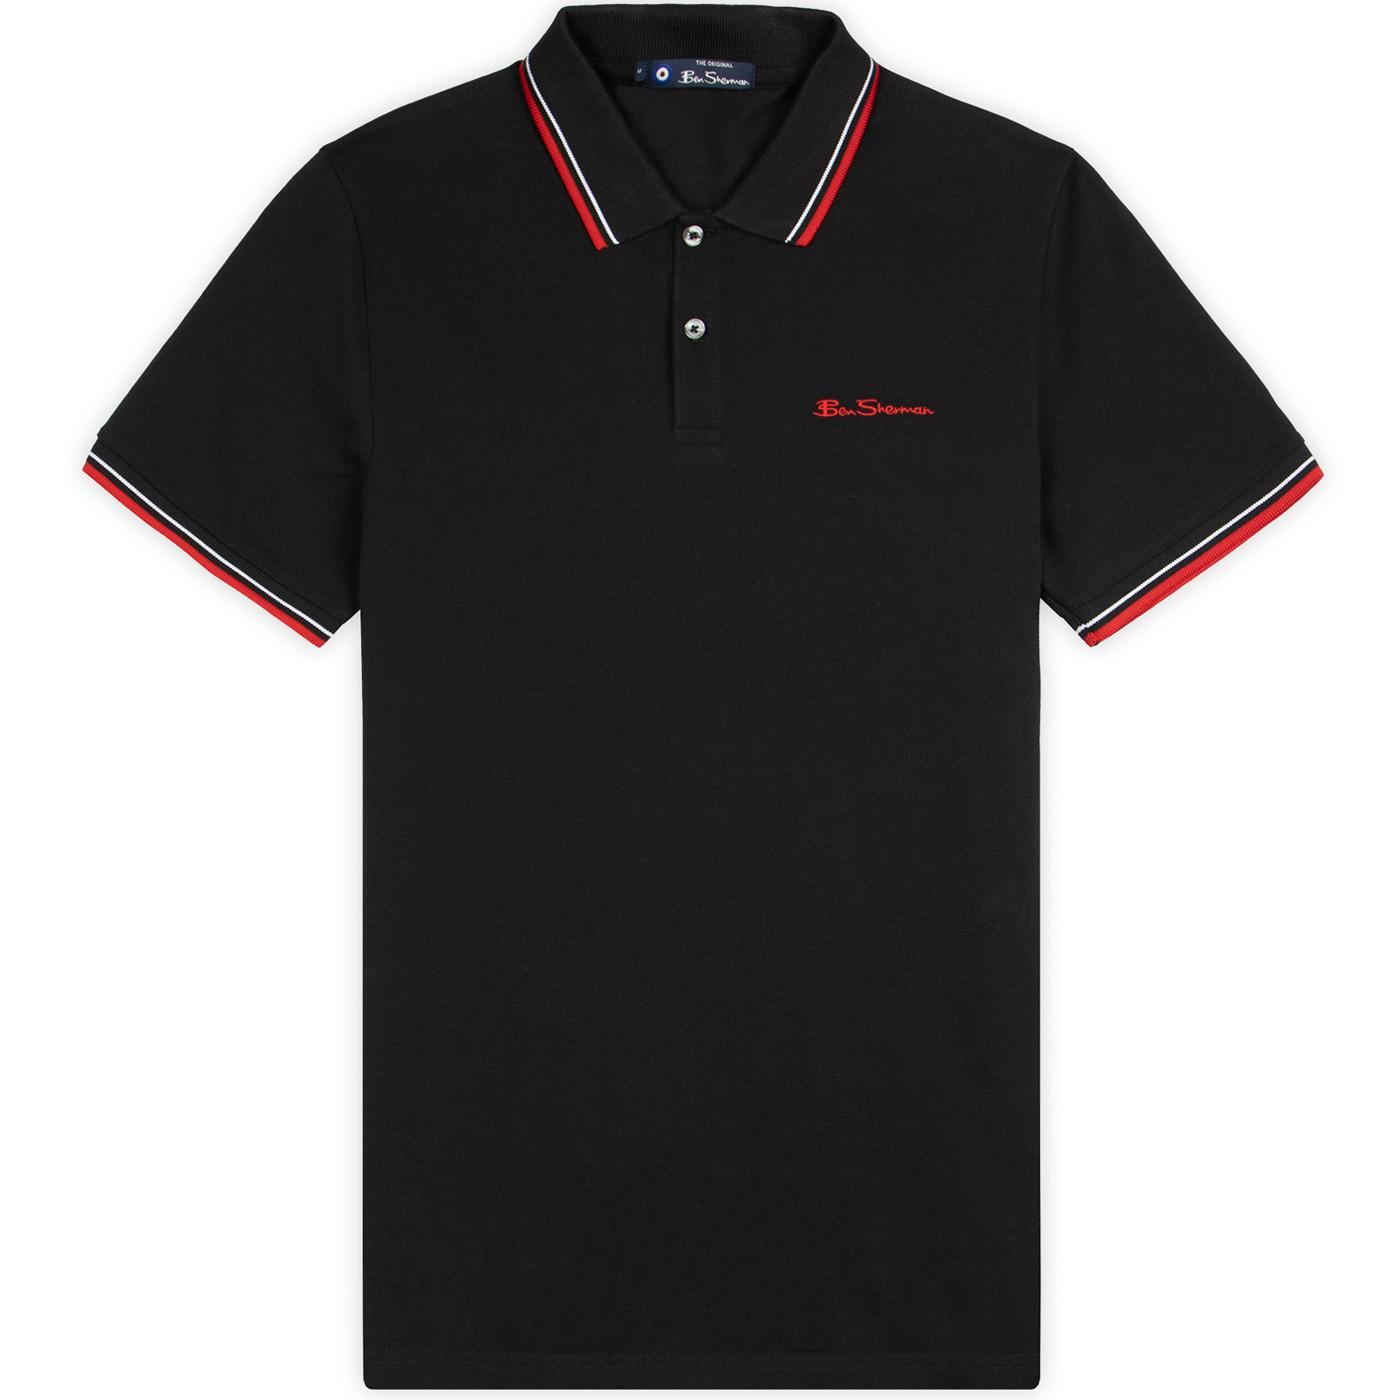 BEN SHERMAN Mod Tipped Signature Polo Top (Black)